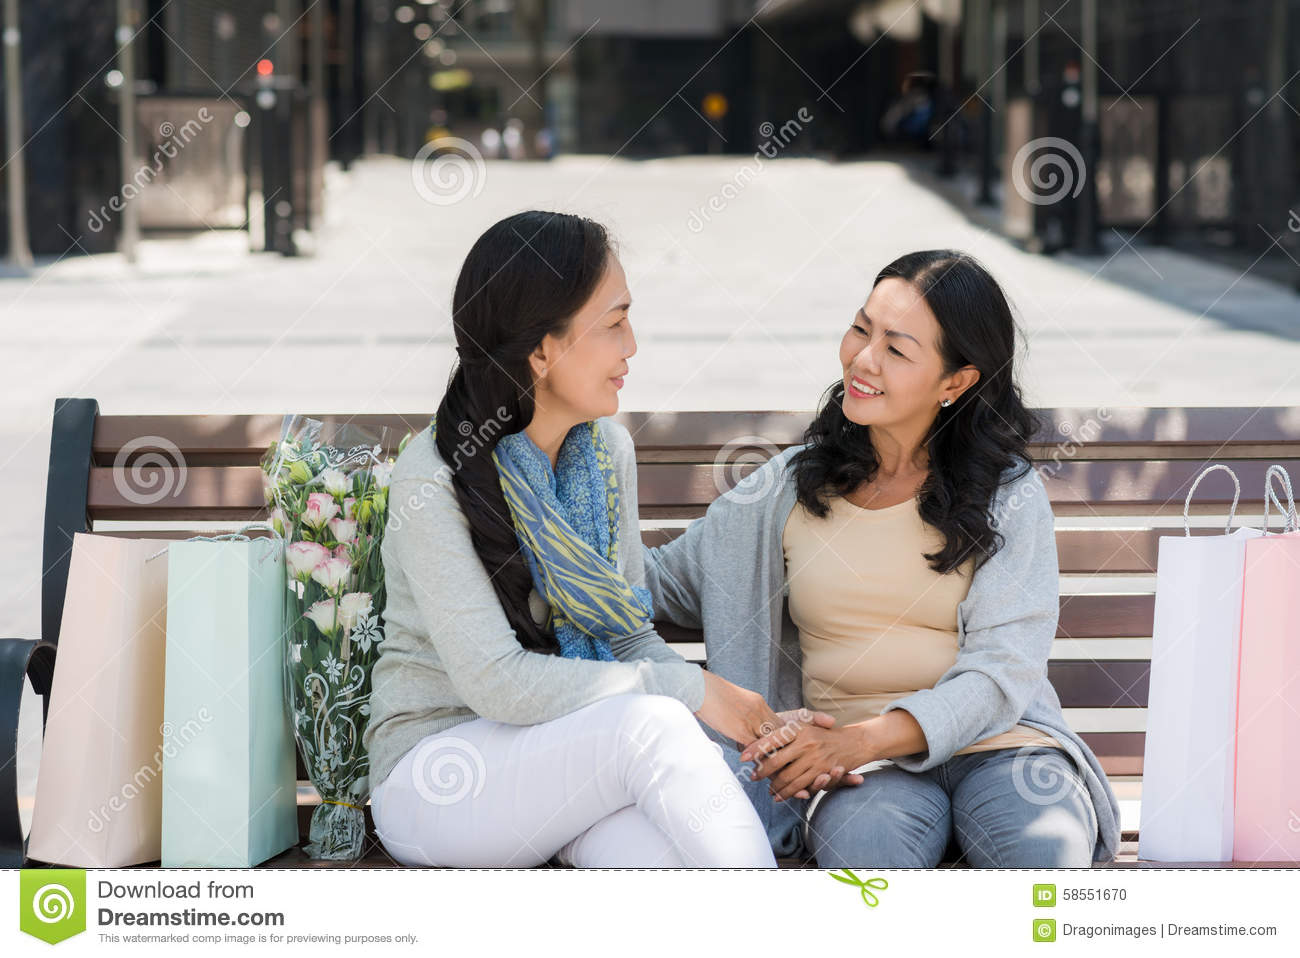 Heart to heart talk stock photo. Image of bench, casual